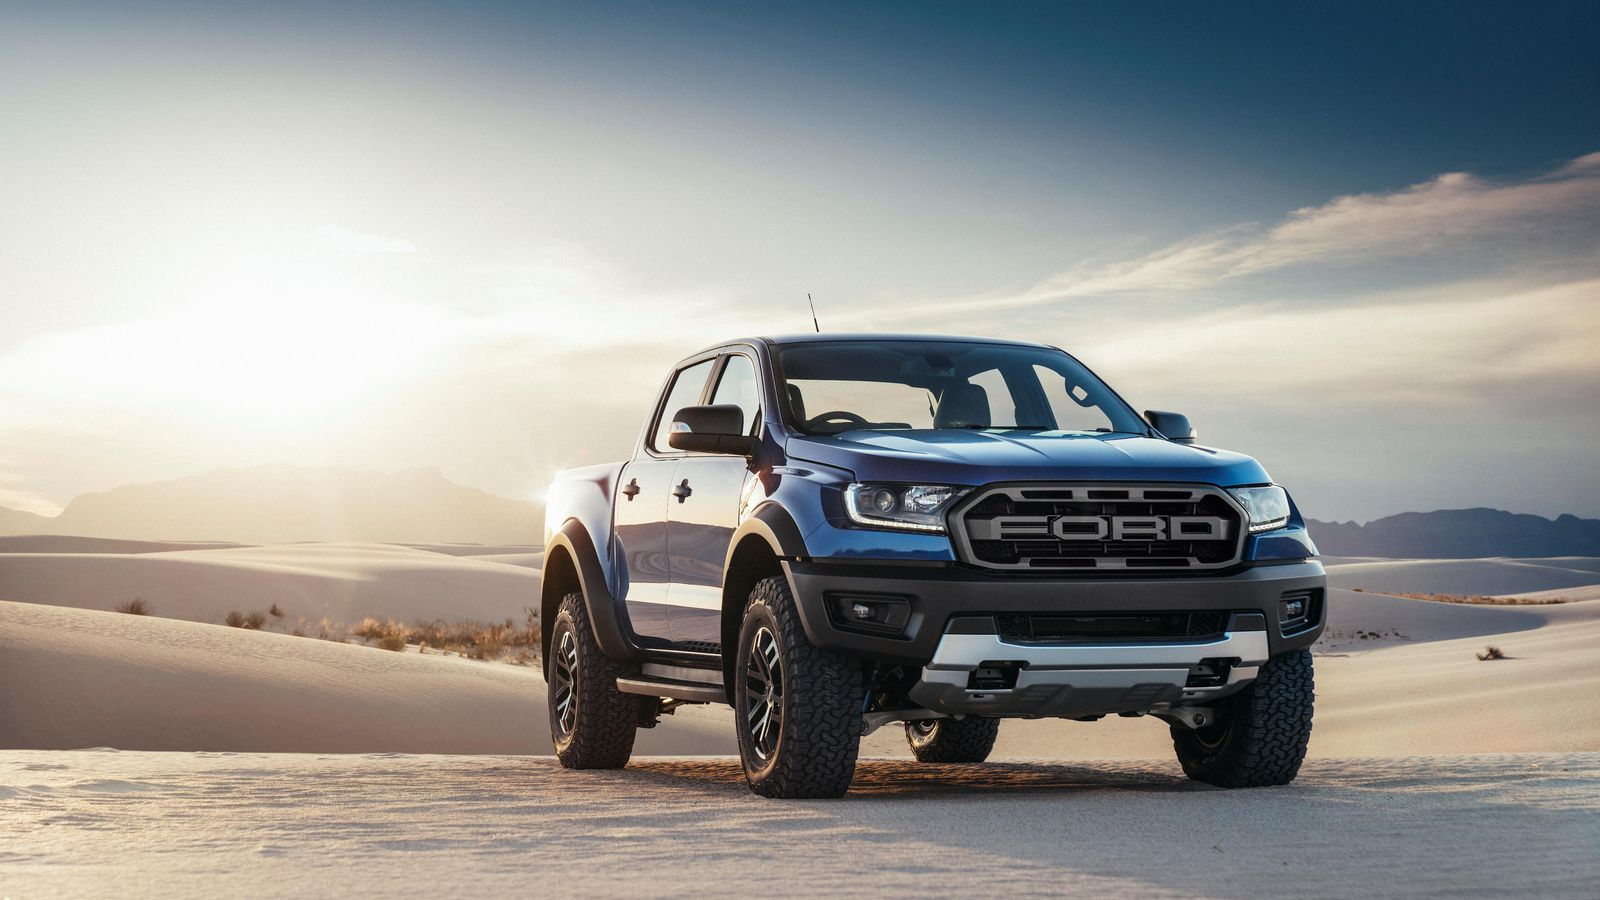 2019 Ford Raptor Ranger vs. Colorado ZR2 - Electronics and ...